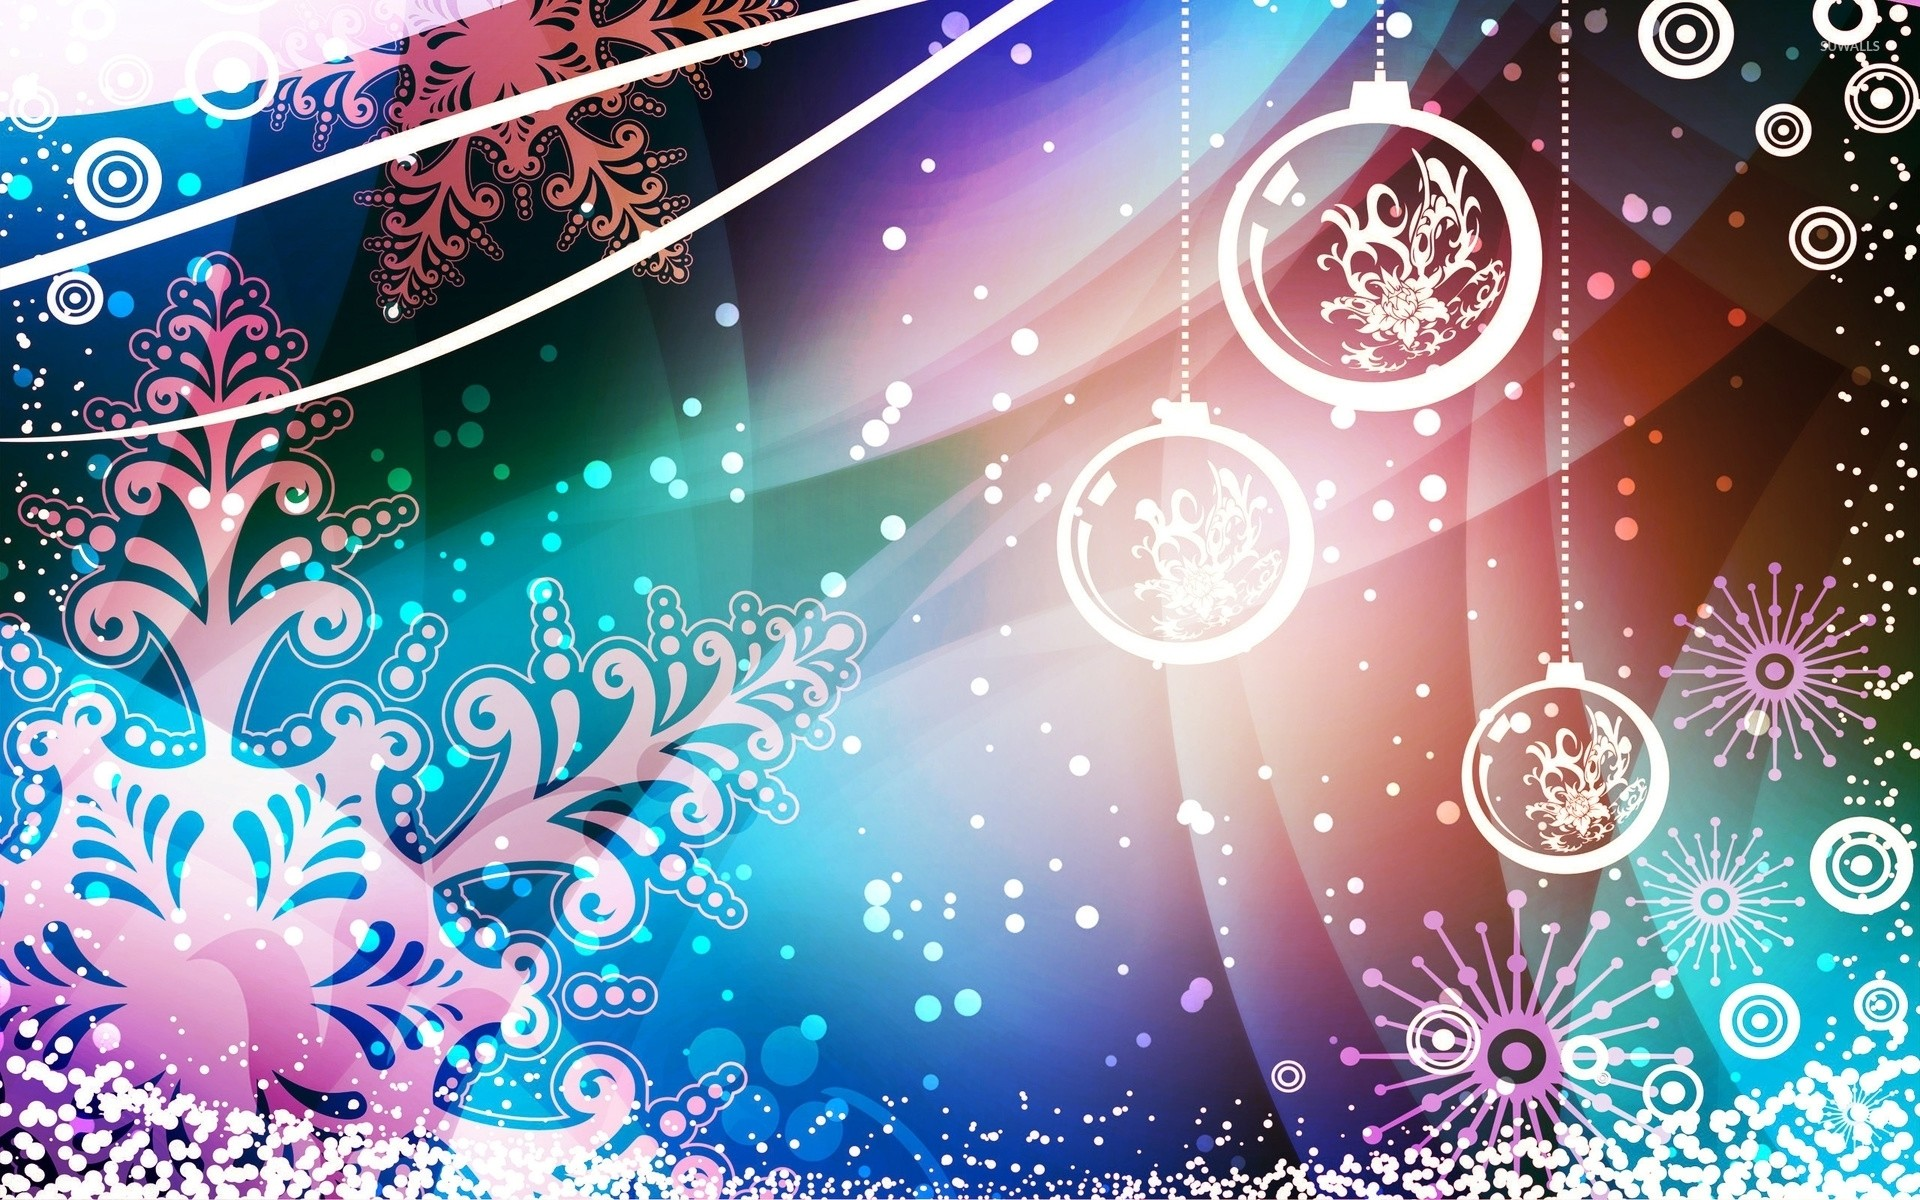 1920x1200 Snowflakes and baubles decorating the Christmas Eve wallpaper